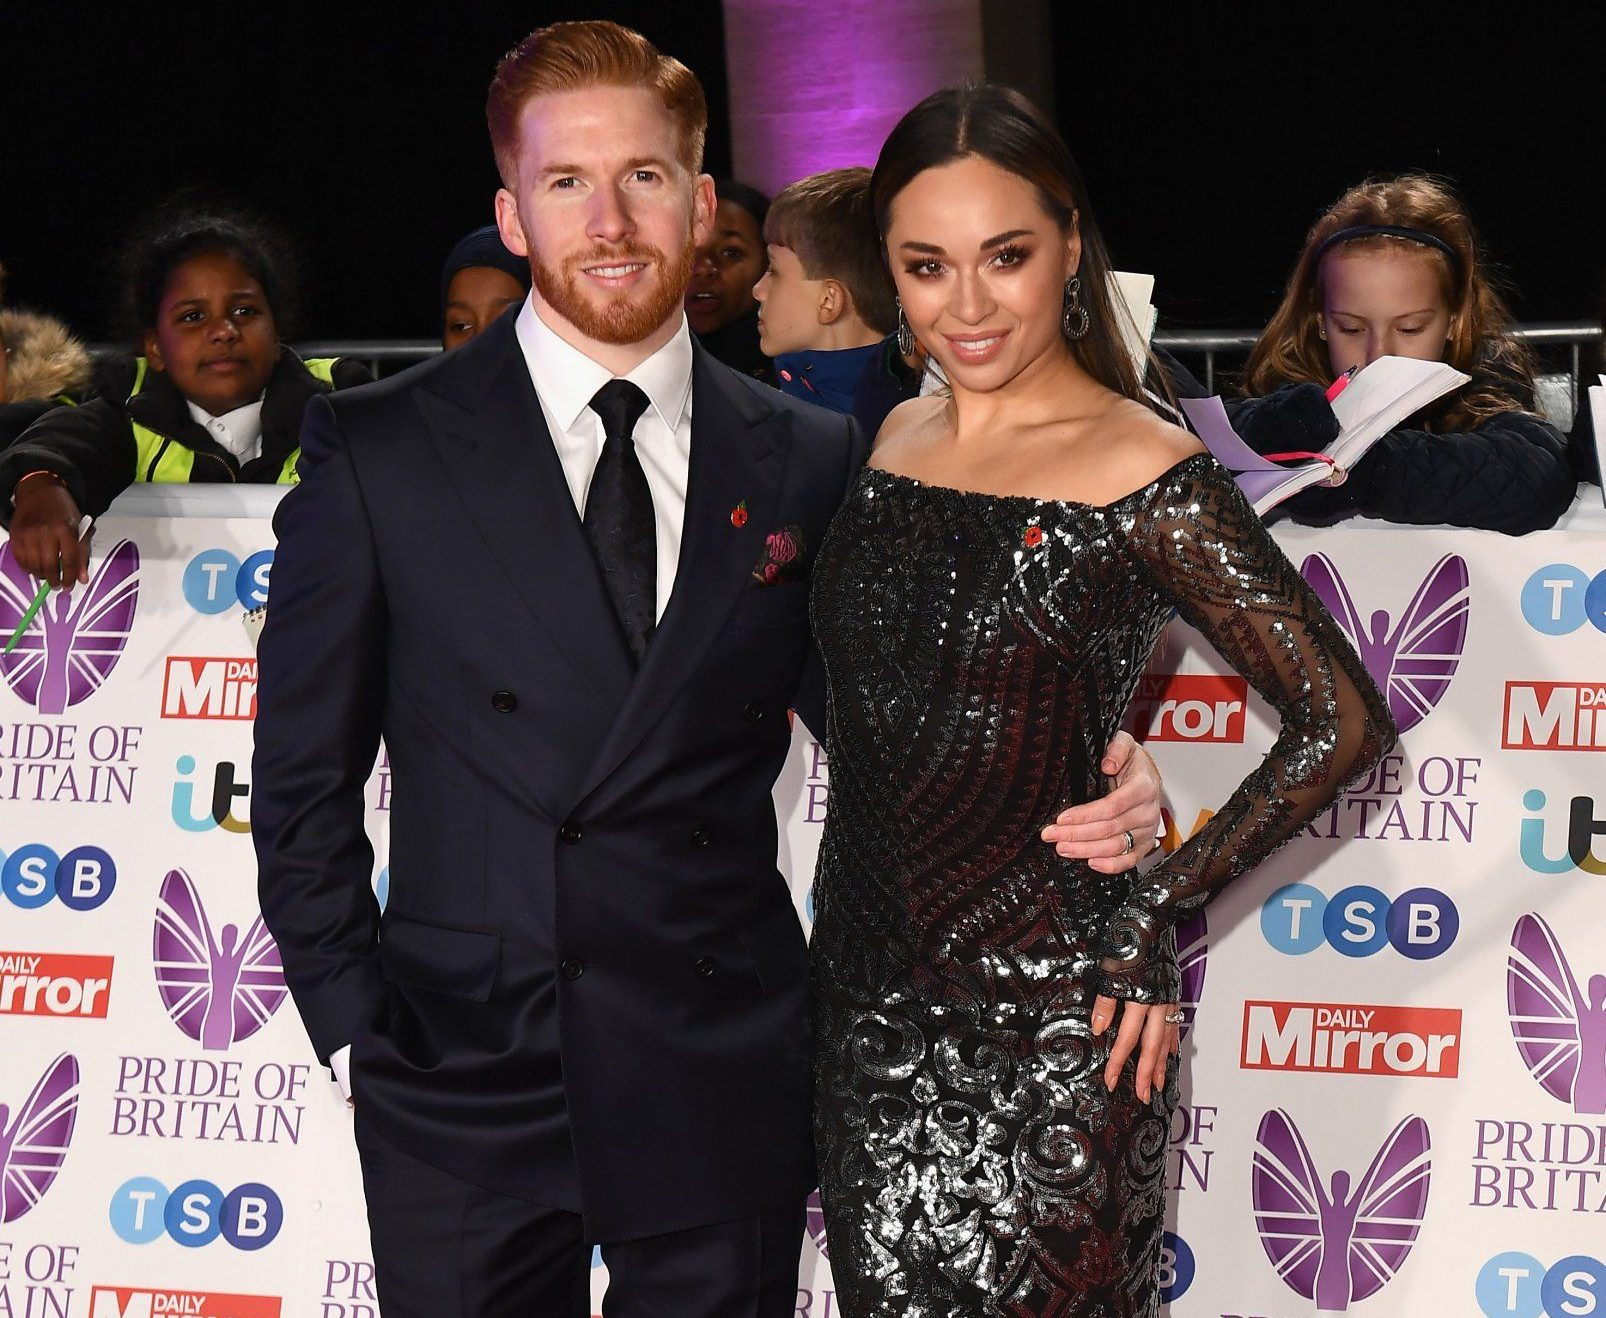 LONDON, ENGLAND - OCTOBER 29: Neil Jones and Katya Jones attend the Pride of Britain Awards 2018 at The Grosvenor House Hotel on October 29, 2018 in London, England. (Photo by Jeff Spicer/Getty Images)